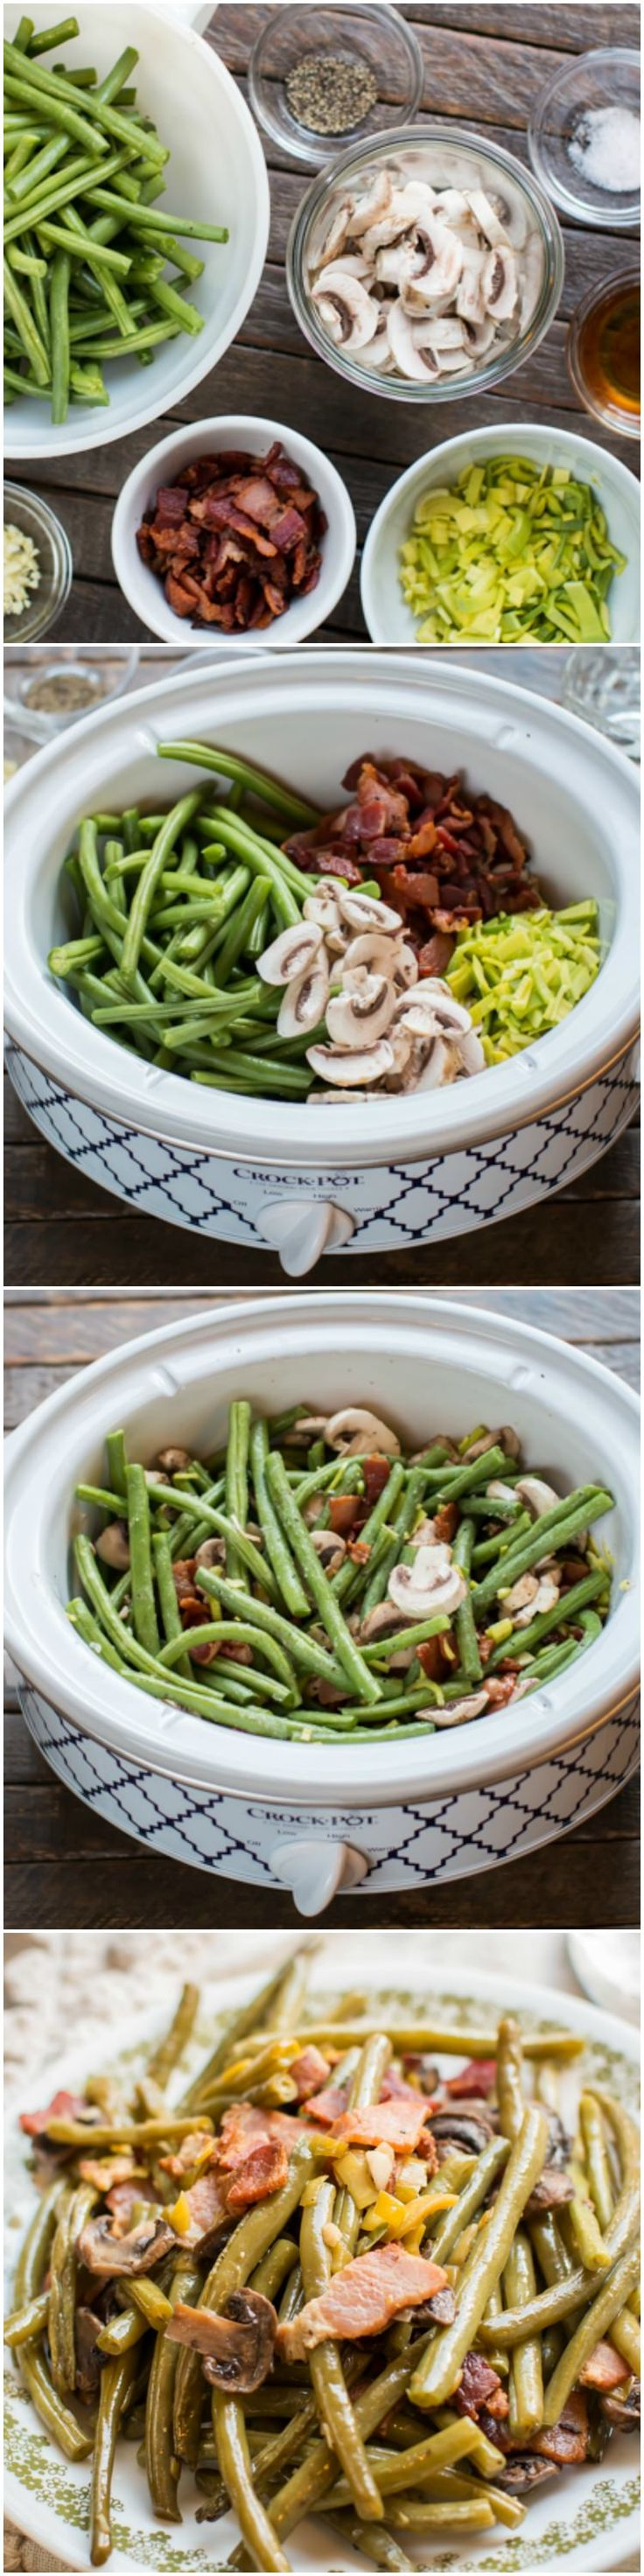 Slow Cooker Holiday Green Beans @Connie Rock-pot #CrockPotRecipes #ad